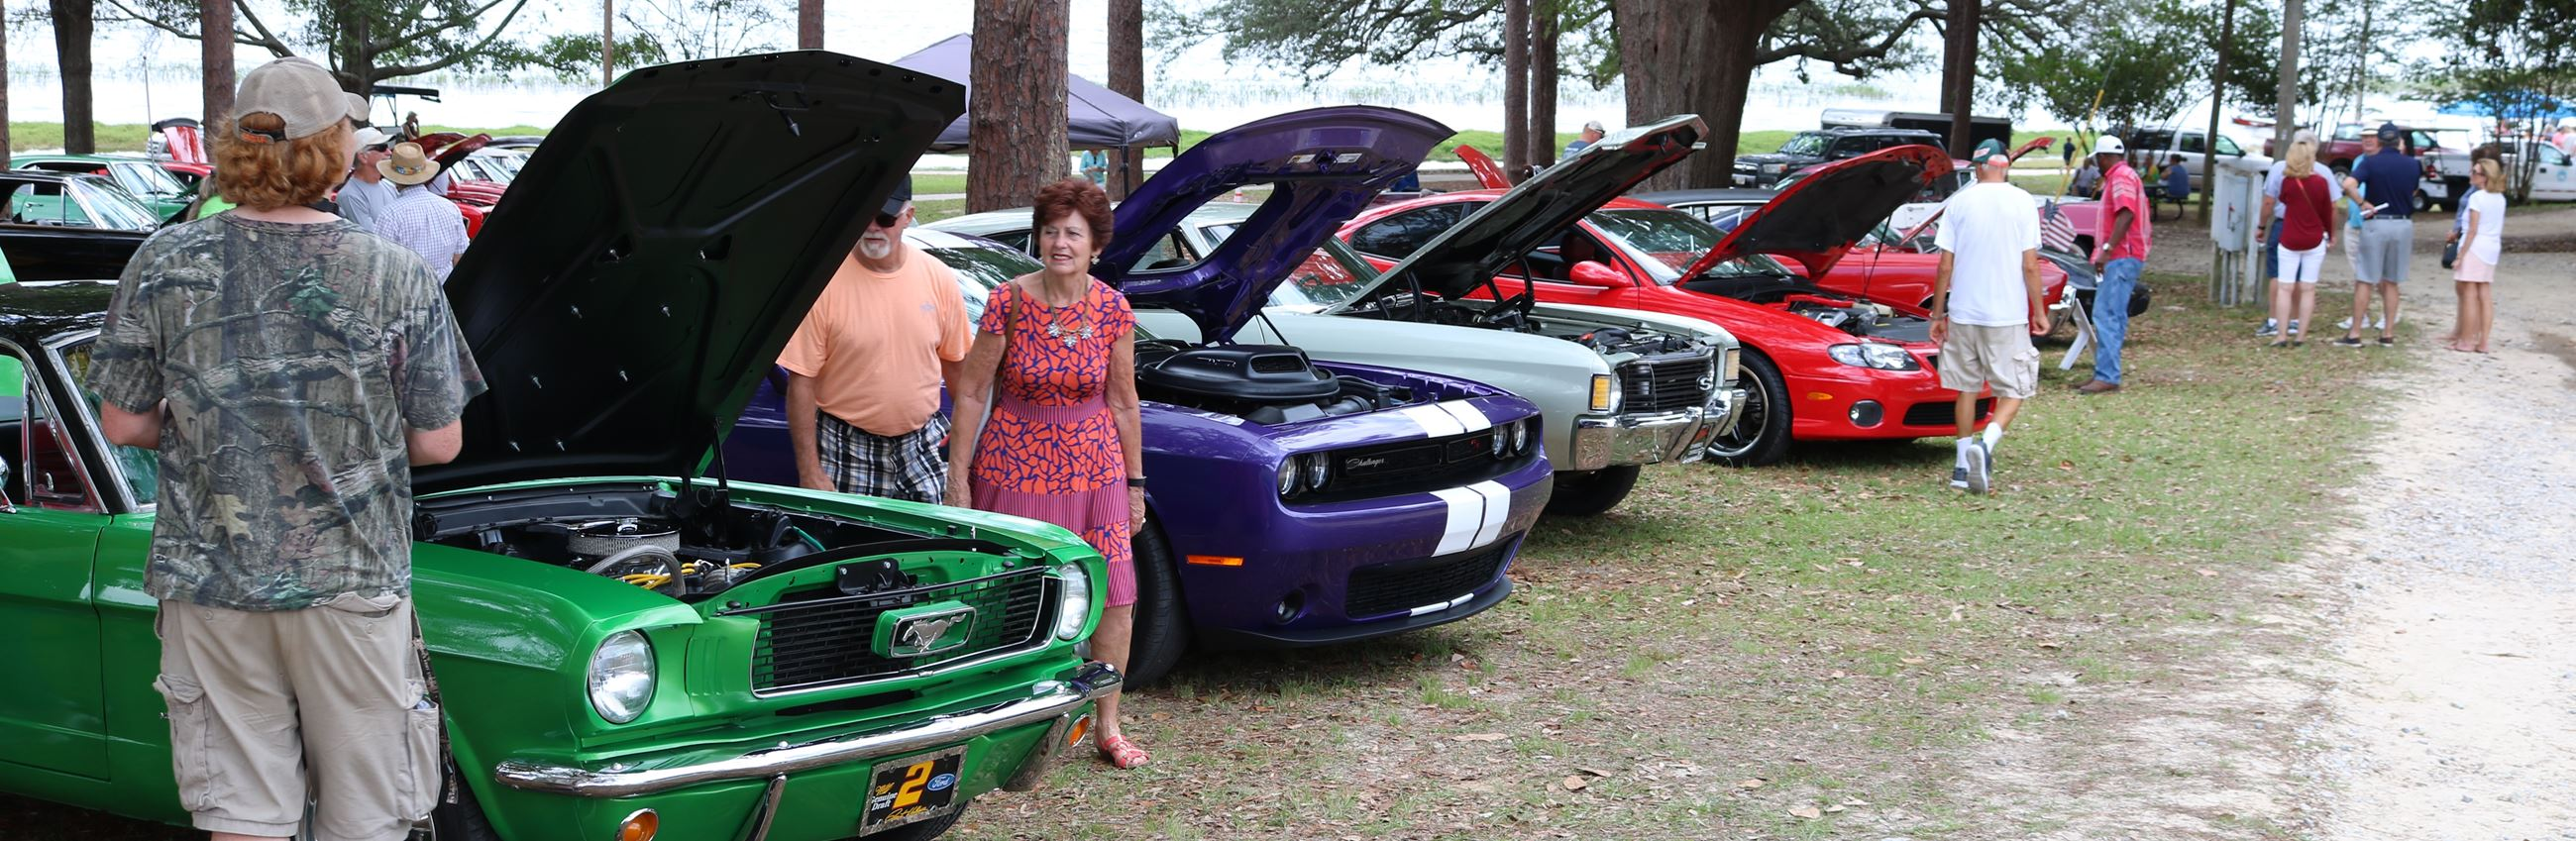 Car Show DeFuniak Springs FL Official Website - Car show florida